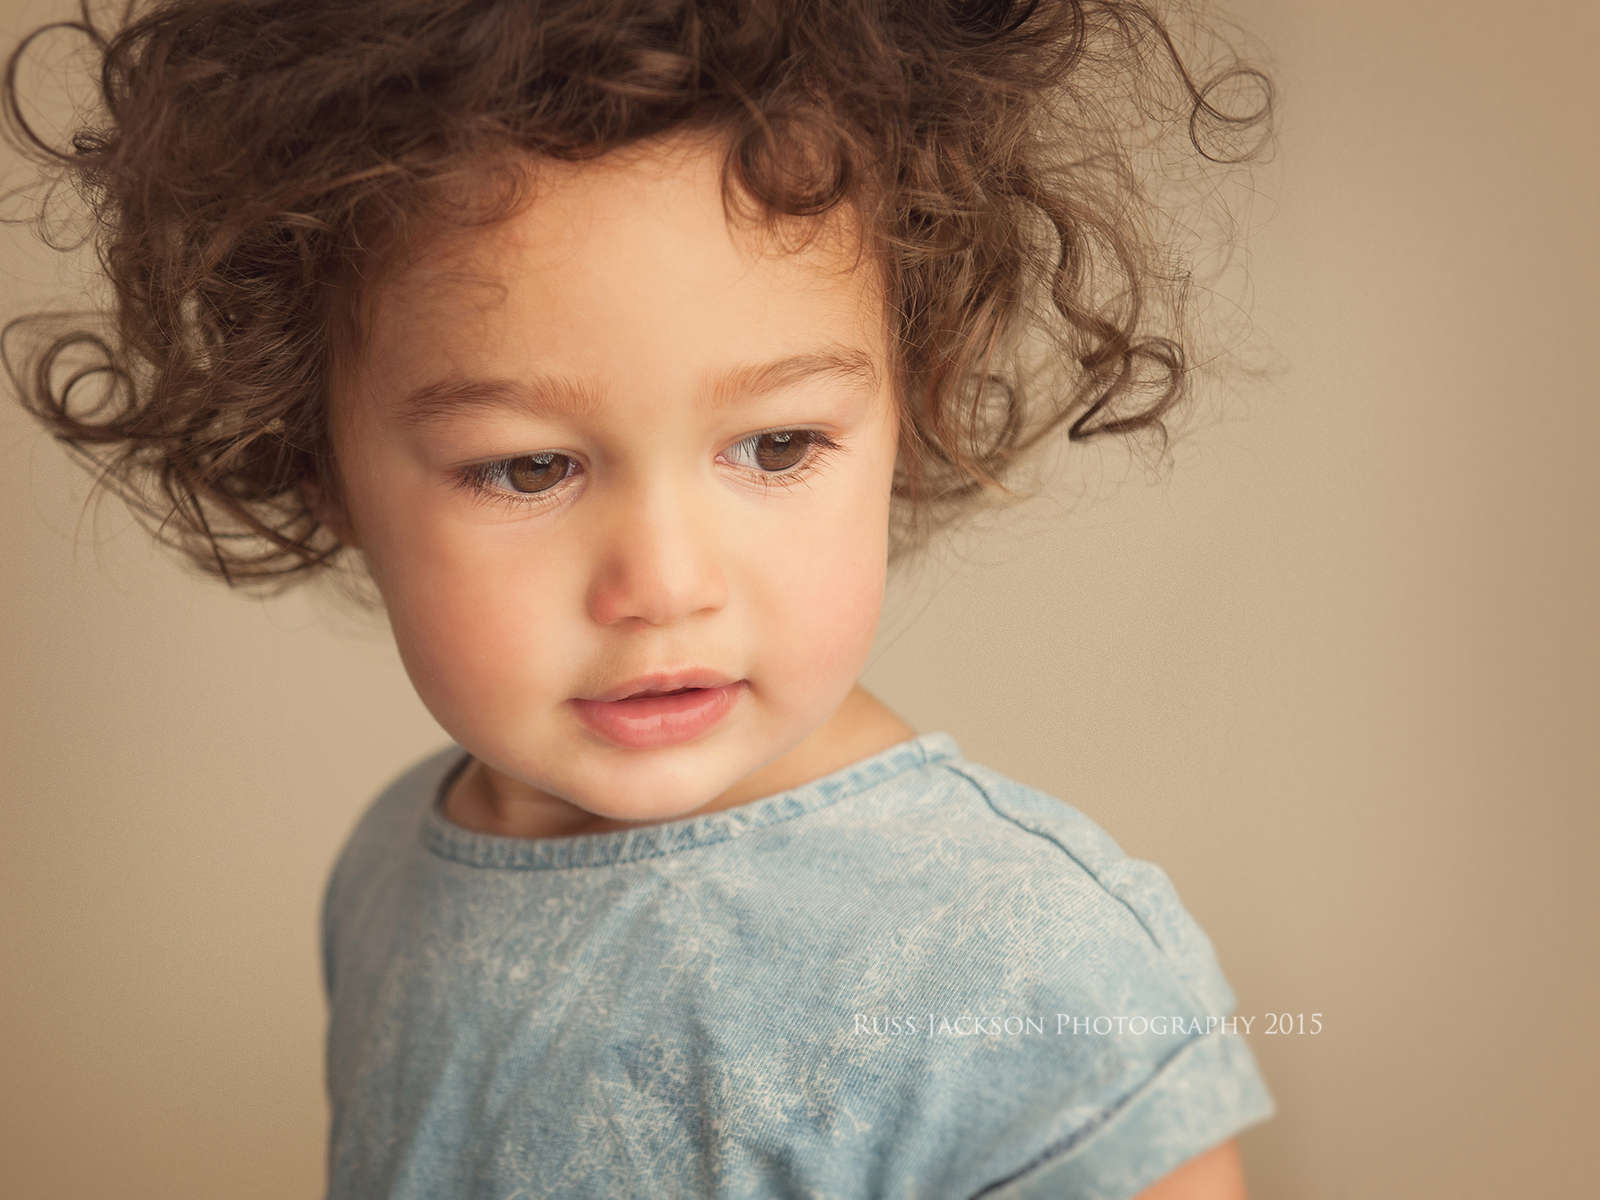 Children-portrait-photographer-london-026